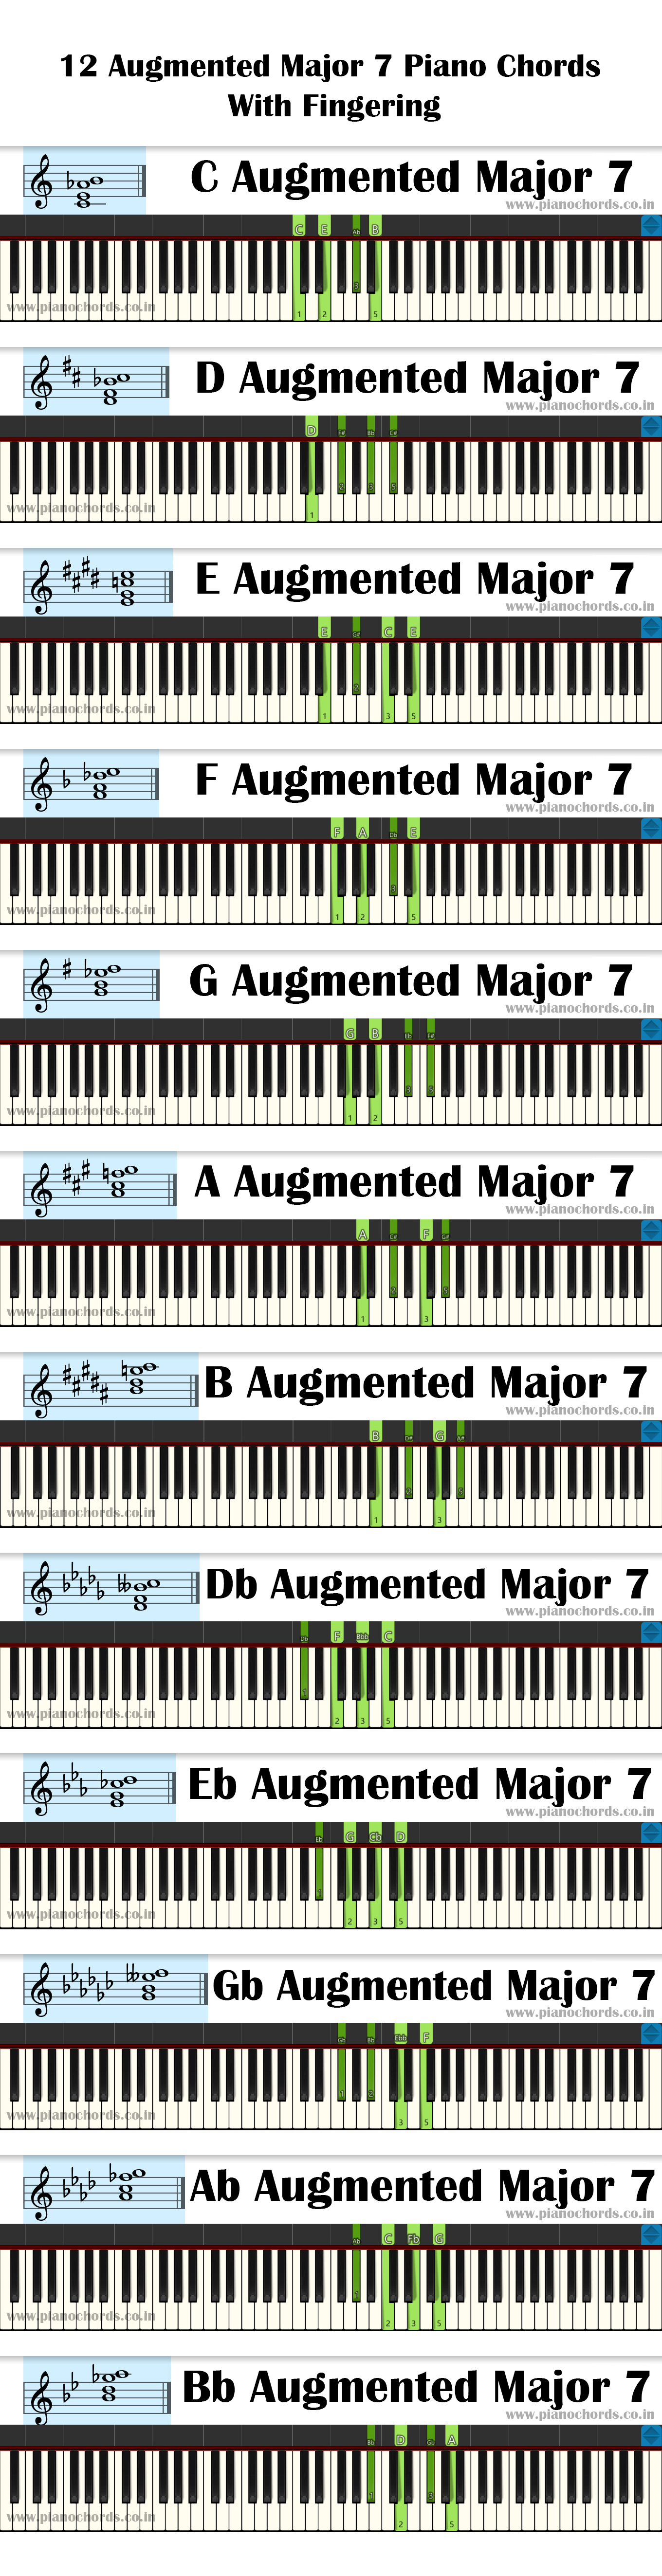 12 Augmented Major 7 Piano Chords With Fingering, Diagram, Staff Notation